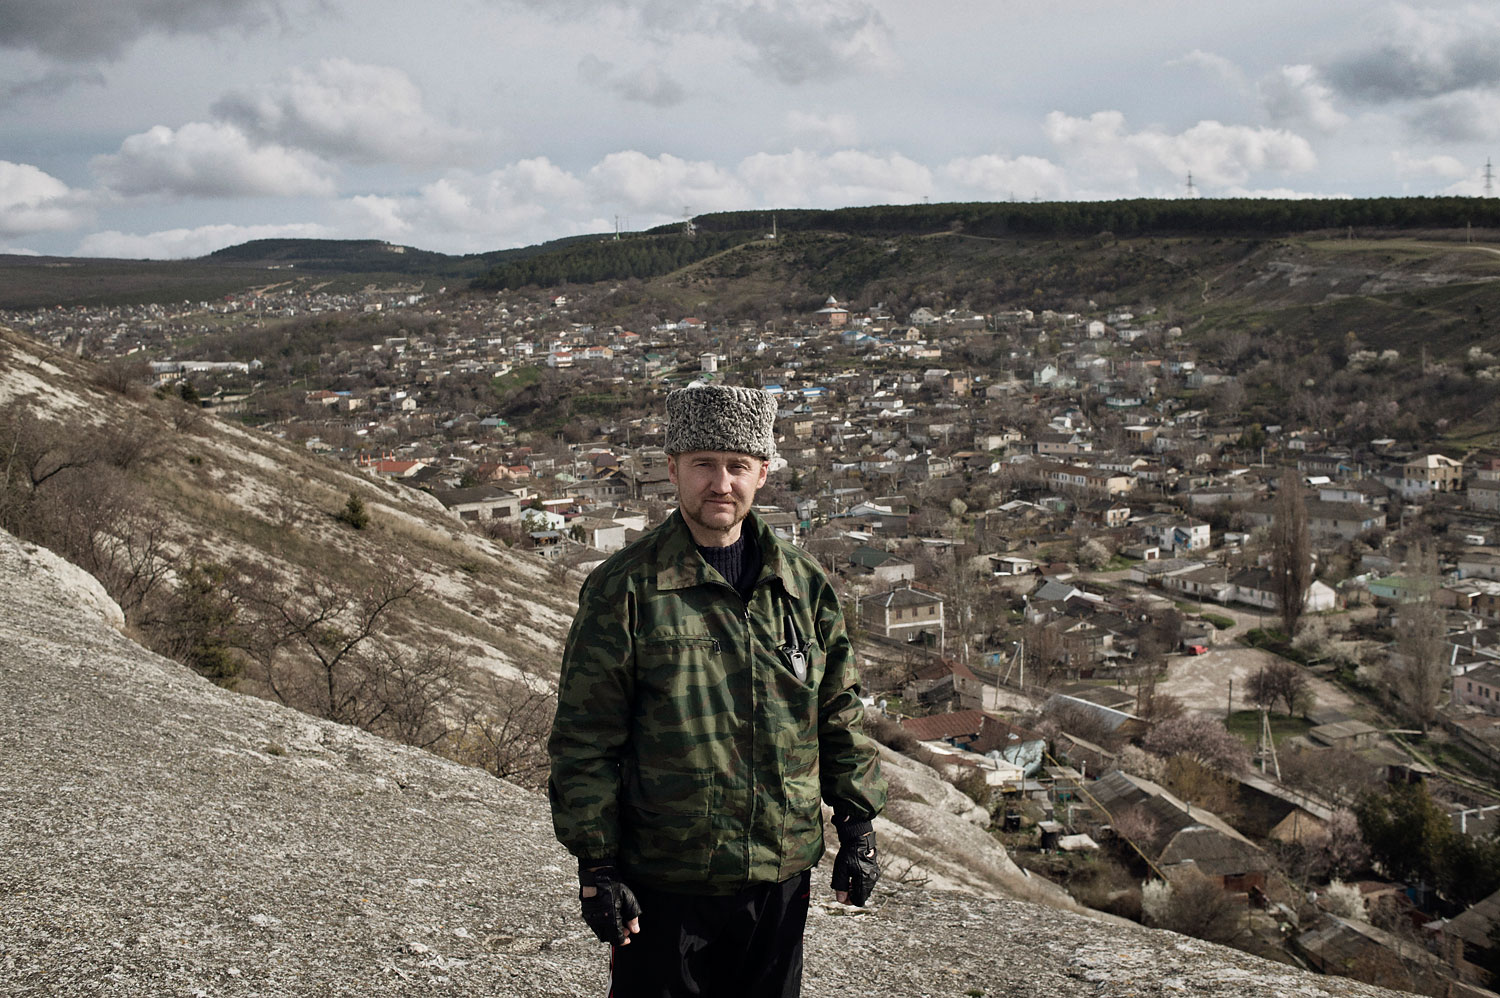 Sergei Yurchenko, the leader of a pro-Russian paramilitary force in Crimea, stands at a lookout point over his hometown Bakhchysarai, on March 16, 2014.